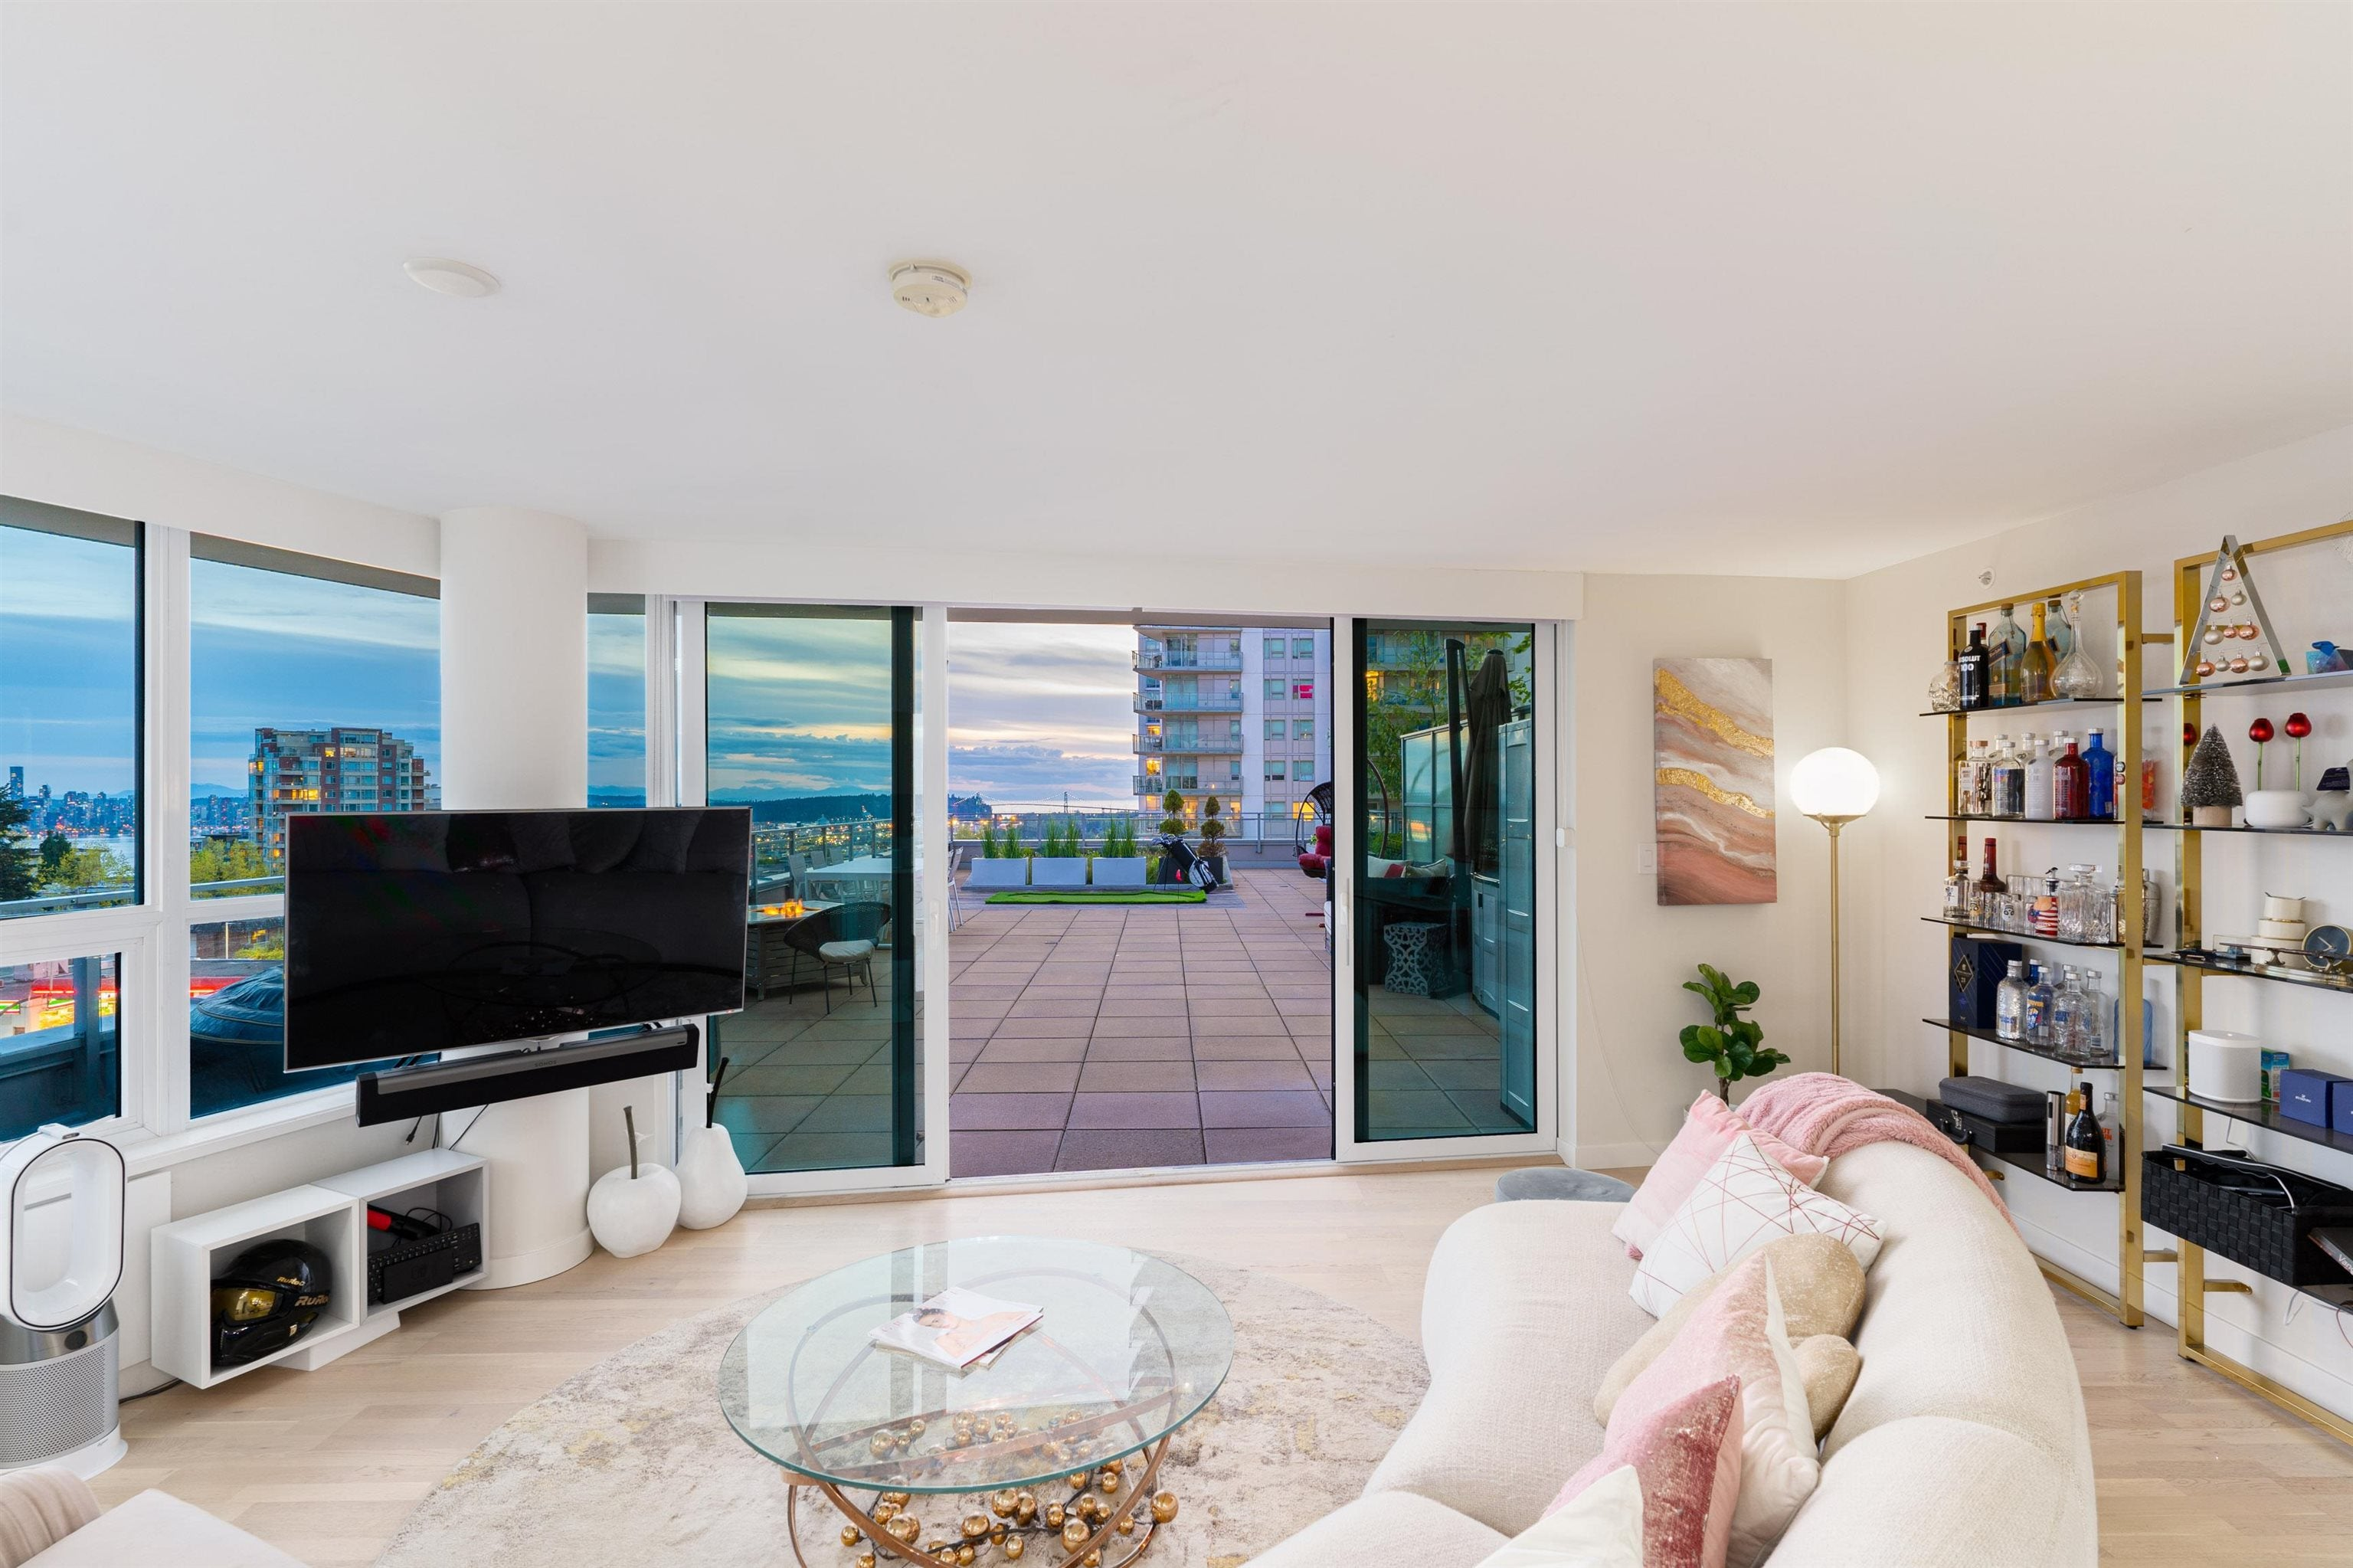 306 112 E 13TH STREET - Central Lonsdale Apartment/Condo for sale, 2 Bedrooms (R2619655) - #9